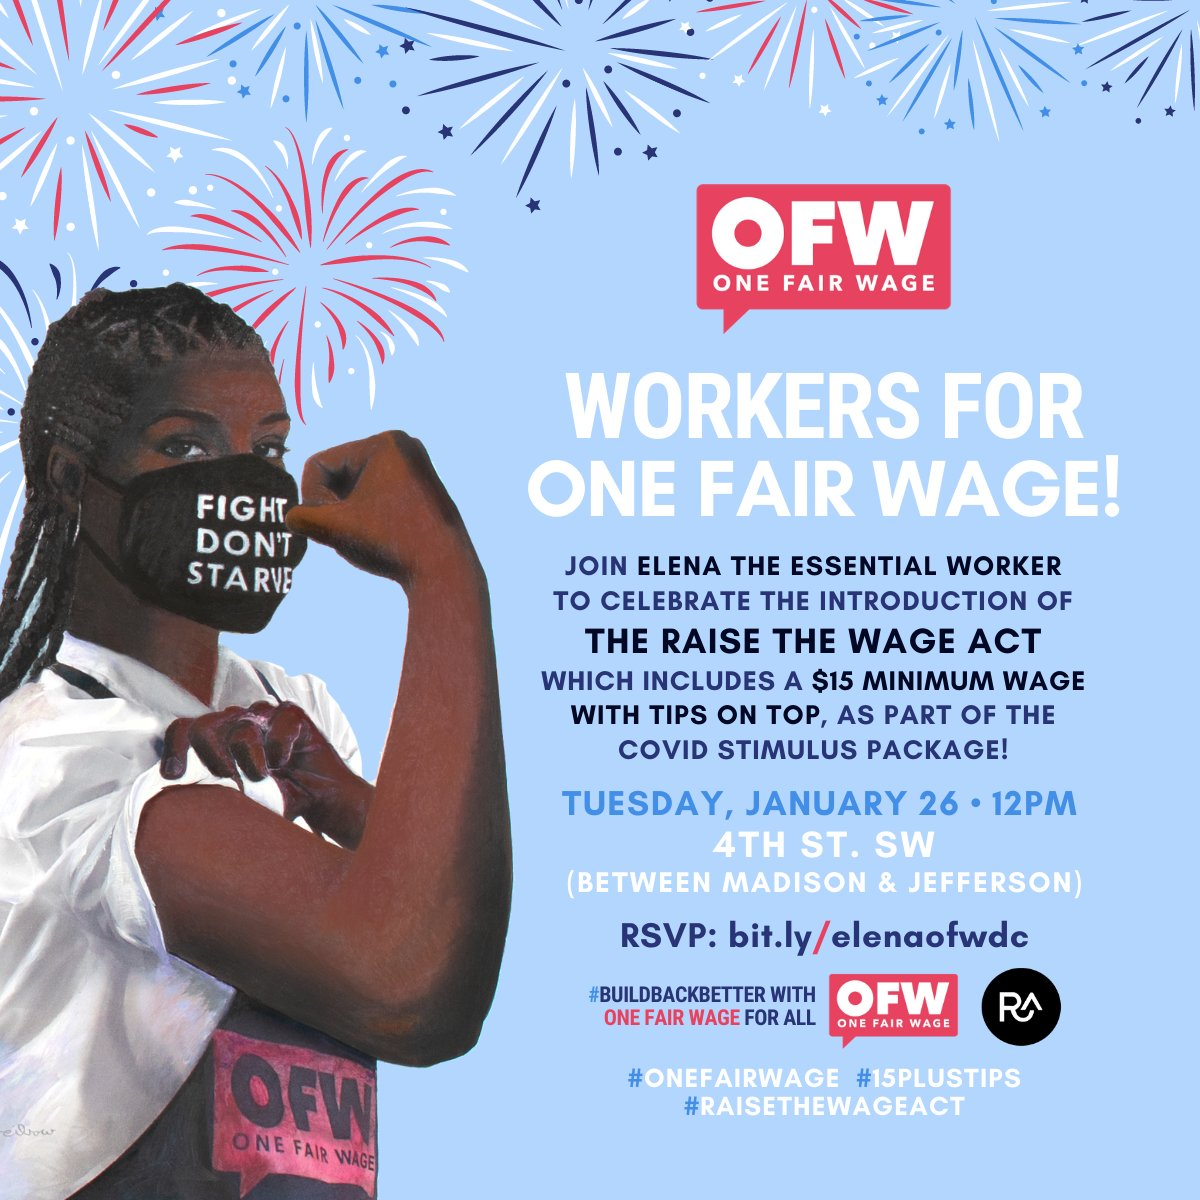 Tomorrow is a big day!   Join us on Capitol Hill as the #RaiseTheWage Act is announced! Workers will be there for to ensure that Congress sees support for ensuring that EVERy worker receives a living wage of $15 per hour.   #OneFairWage #AmericanRescuePlan